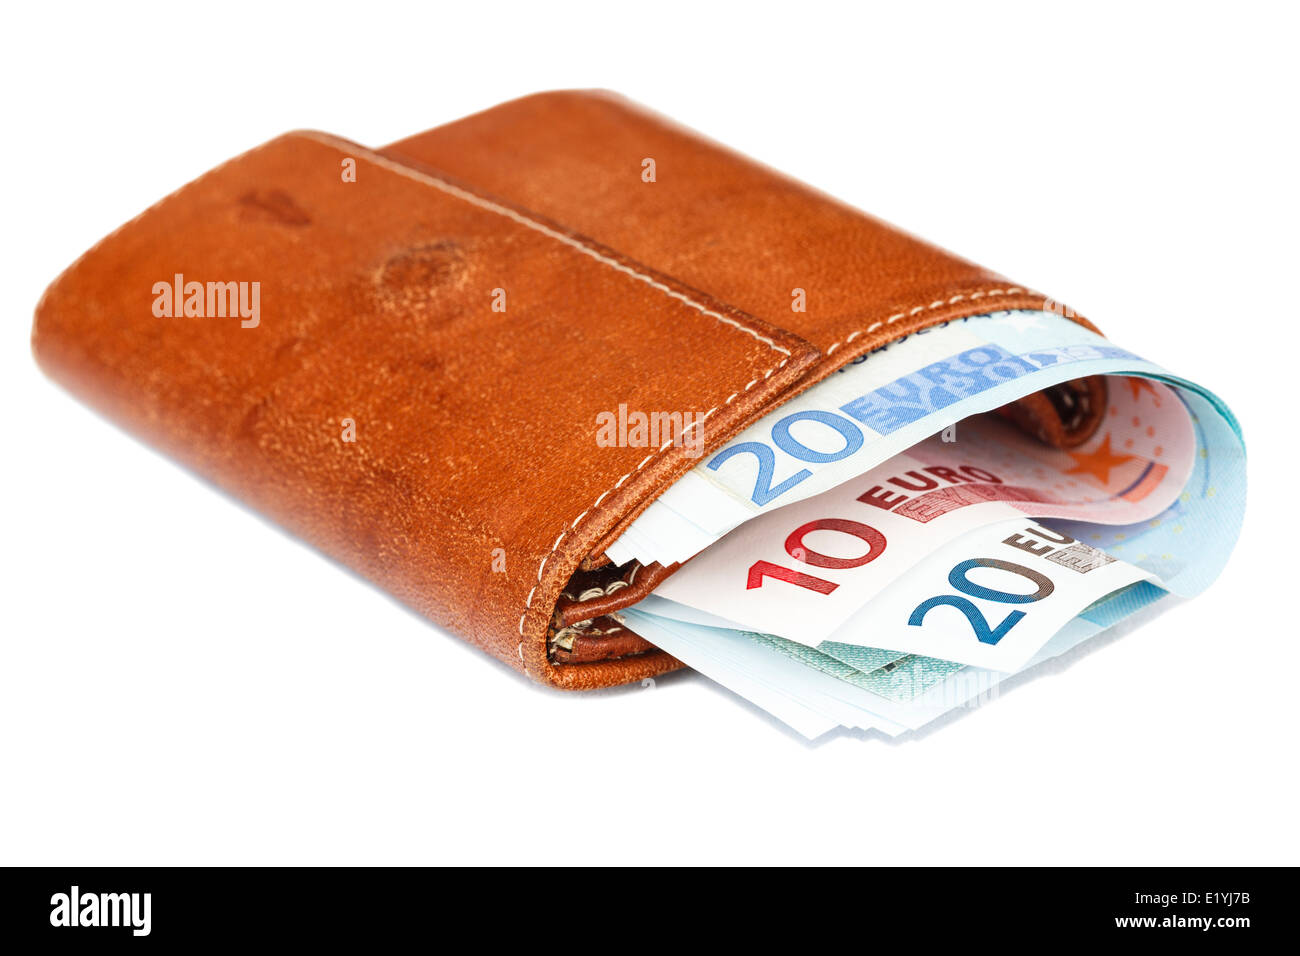 Old brown leather wallet purse stuffed full with Euros Euro notes from the Eurozone cut out and isolated on a white - Stock Image